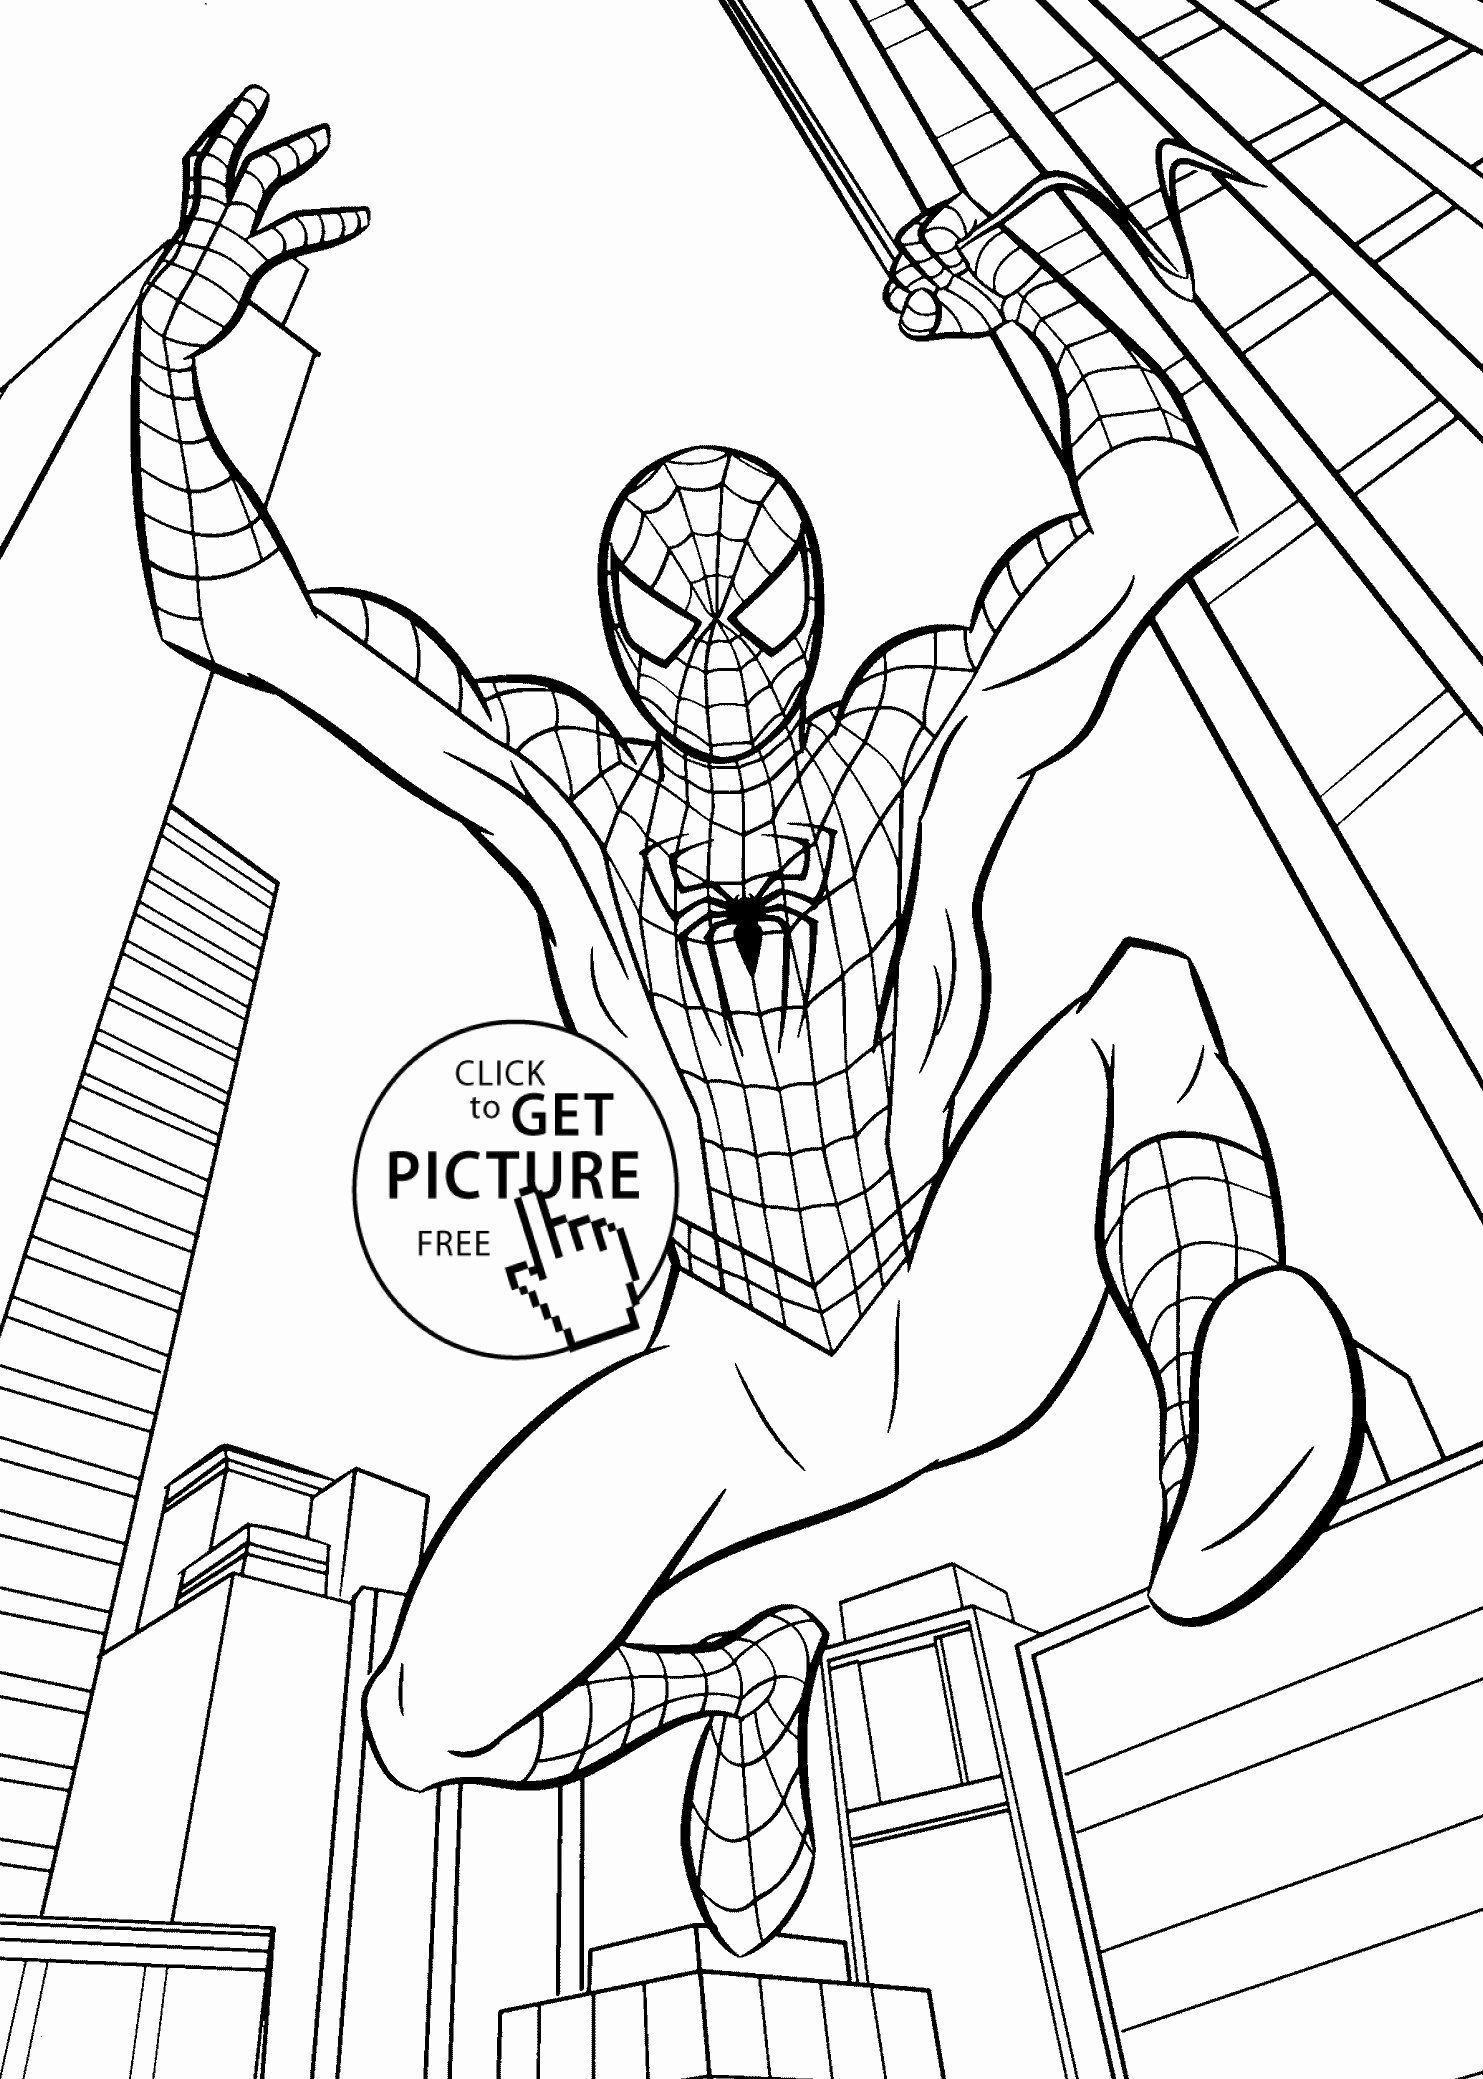 Superhero Free Coloring Pages Lovely 50 New Printable Coloring For Kids Superhero Coloring Pages Avengers Coloring Avengers Coloring Pages